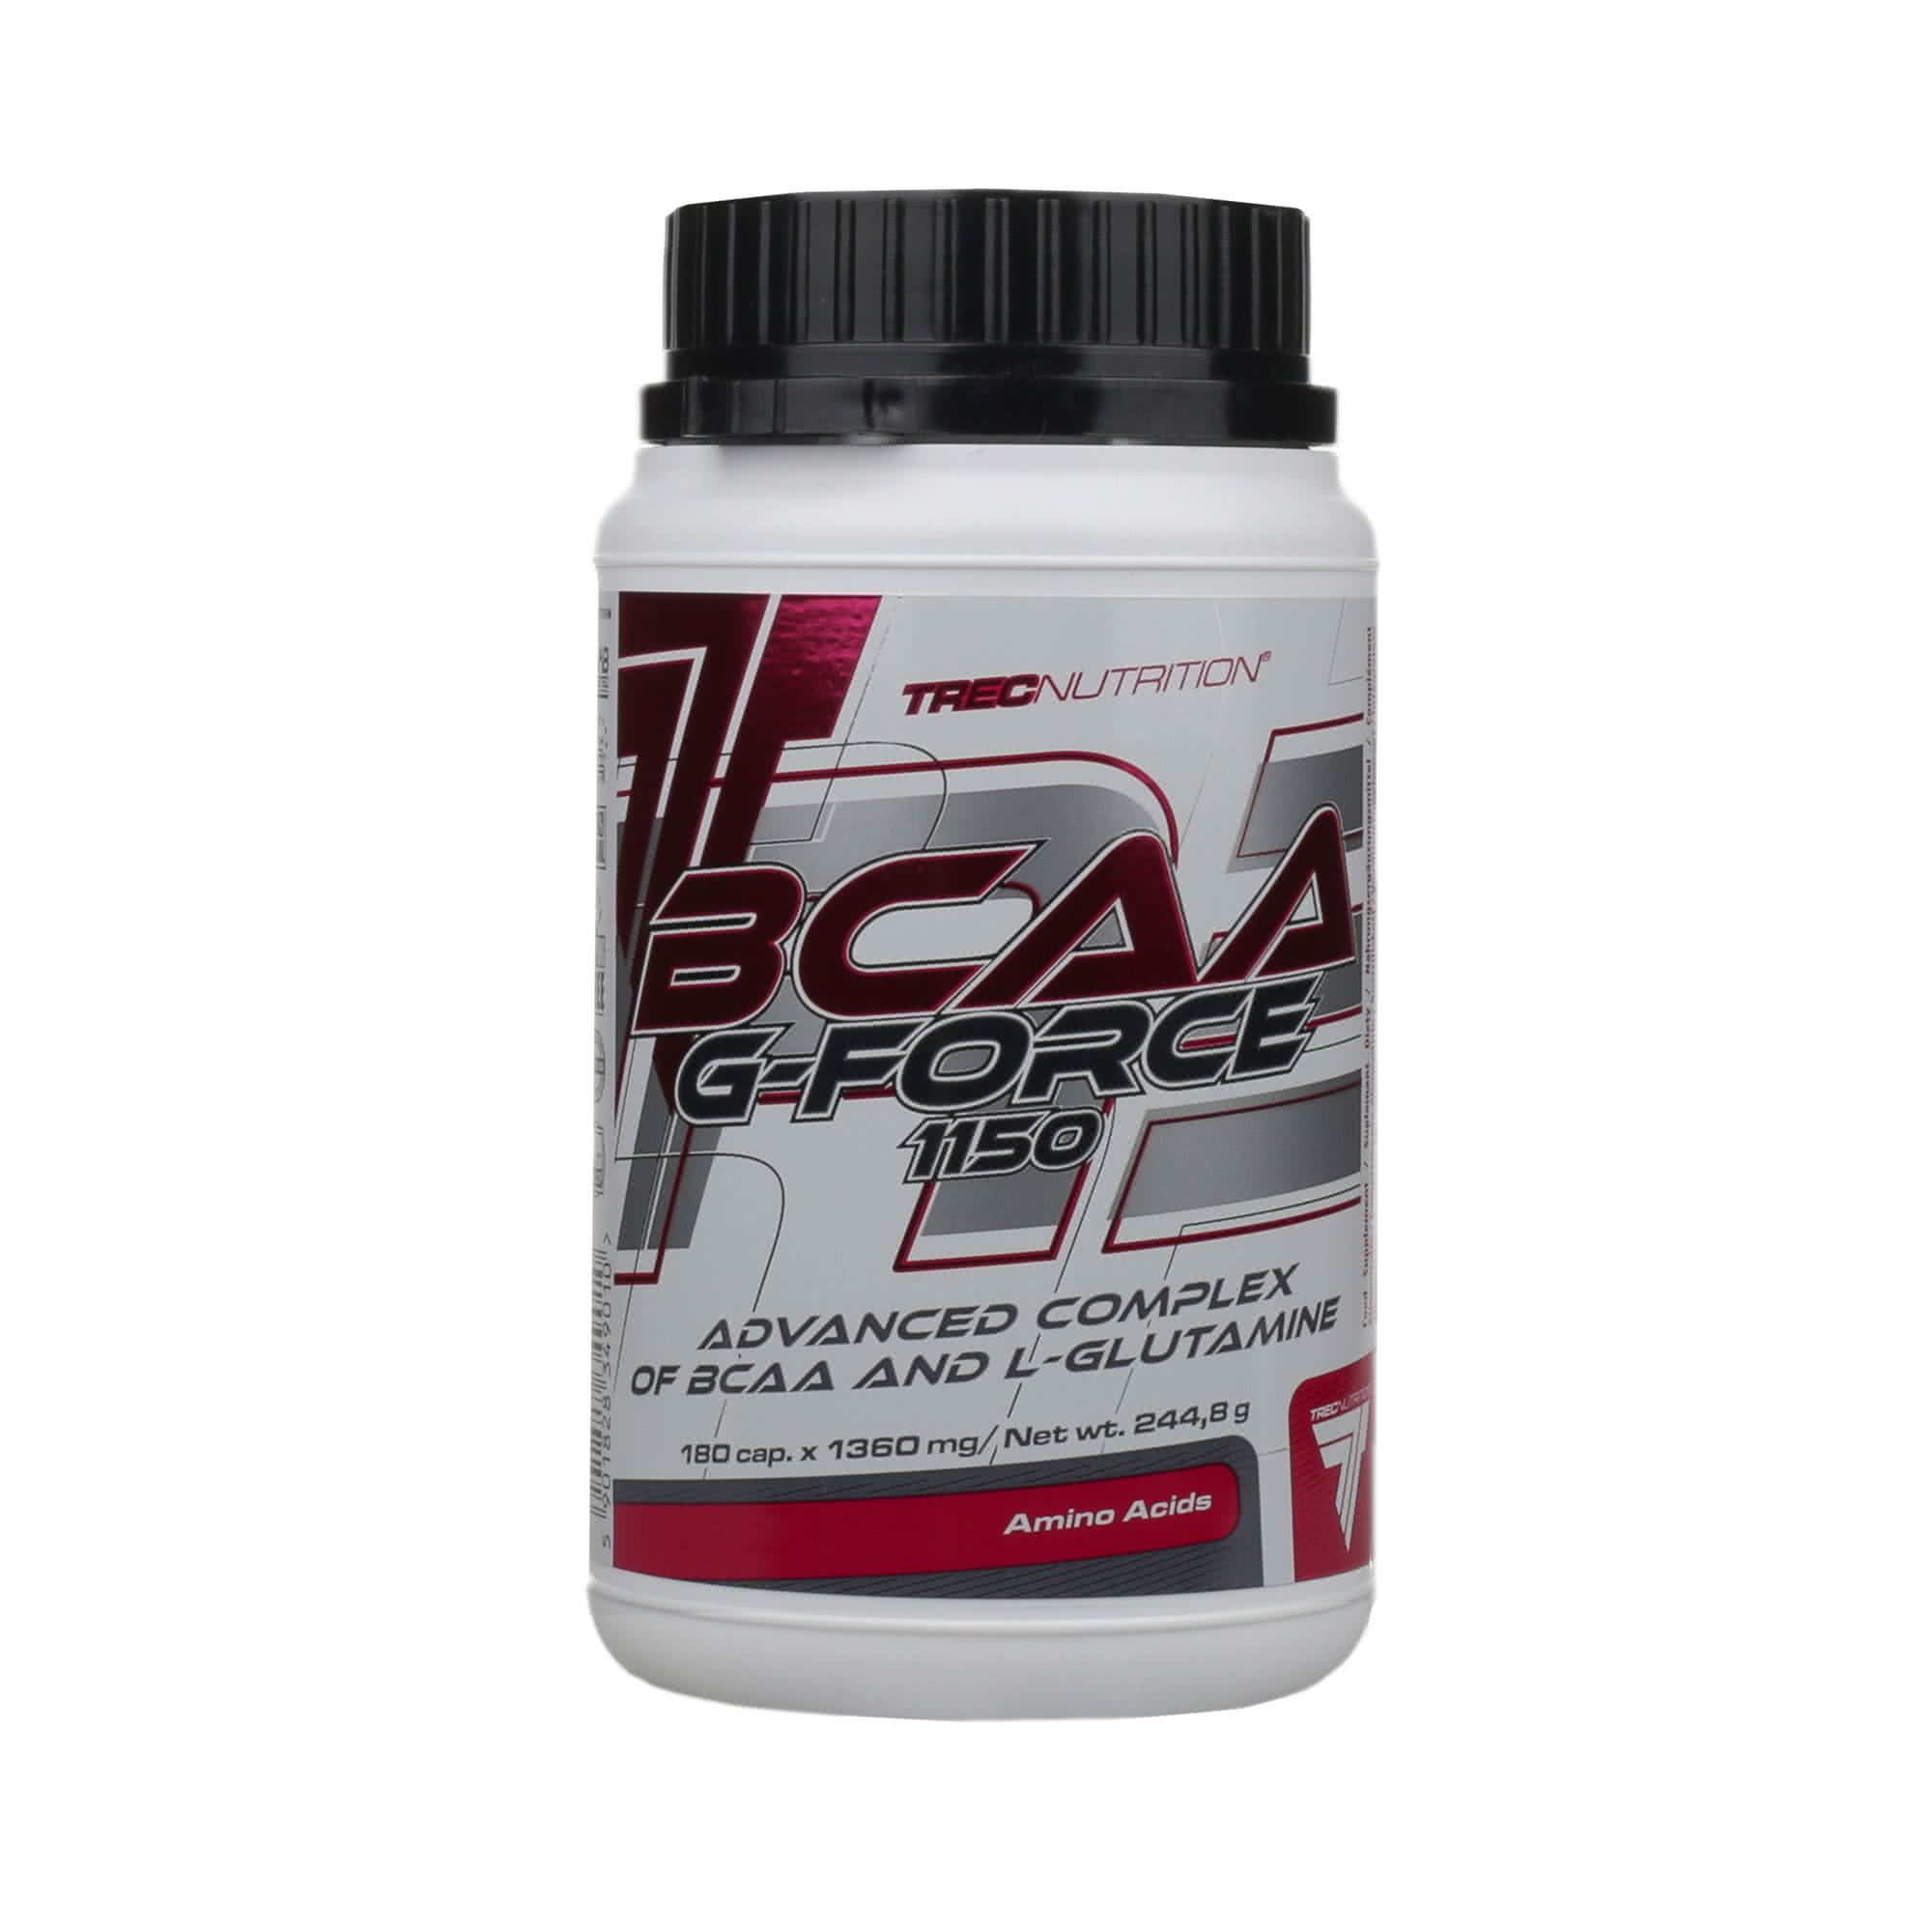 Trec Nutrition BCAA G-Force 1150 180 kap.